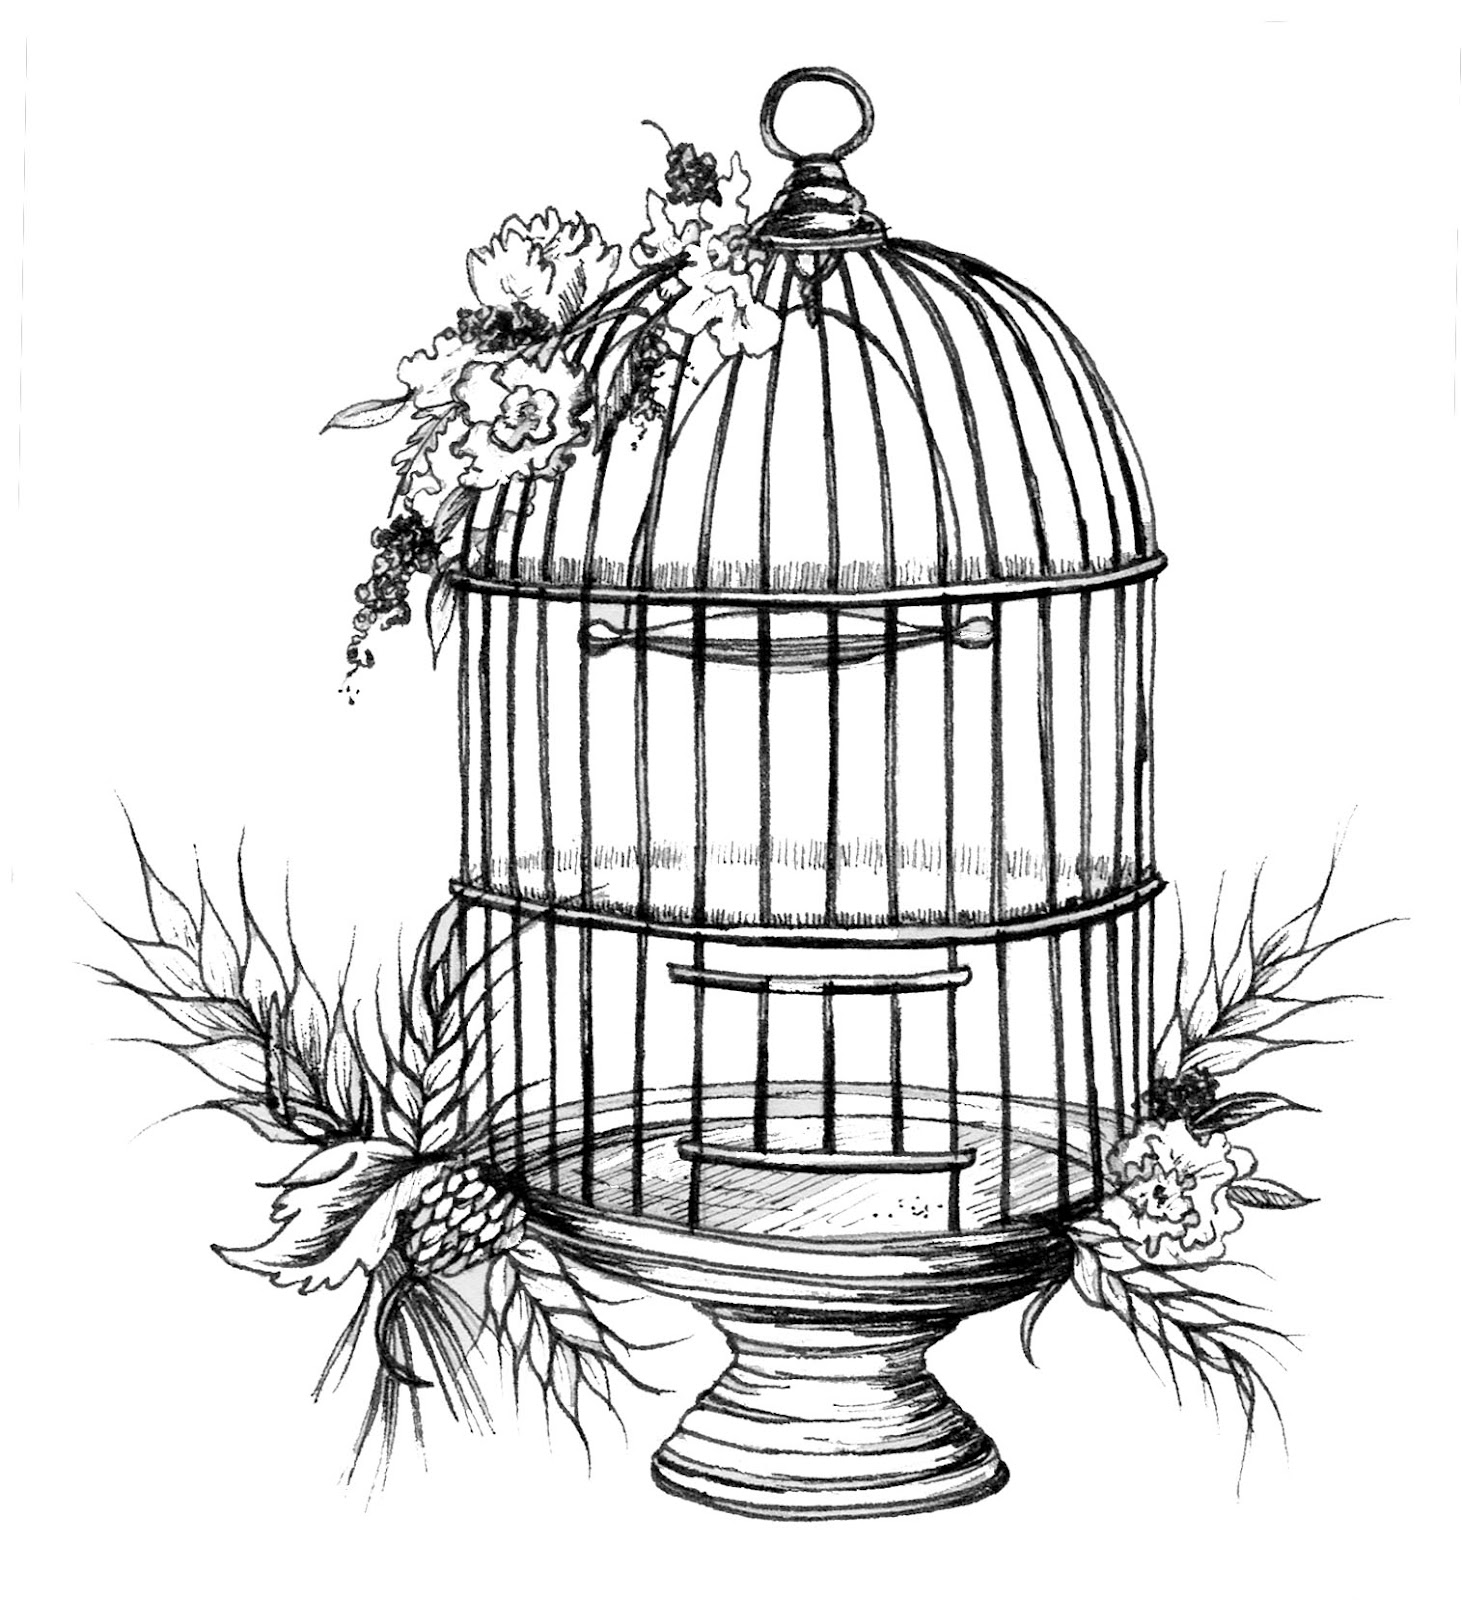 Drawn birdcage Wedding & Birdcages Rustic Stationery